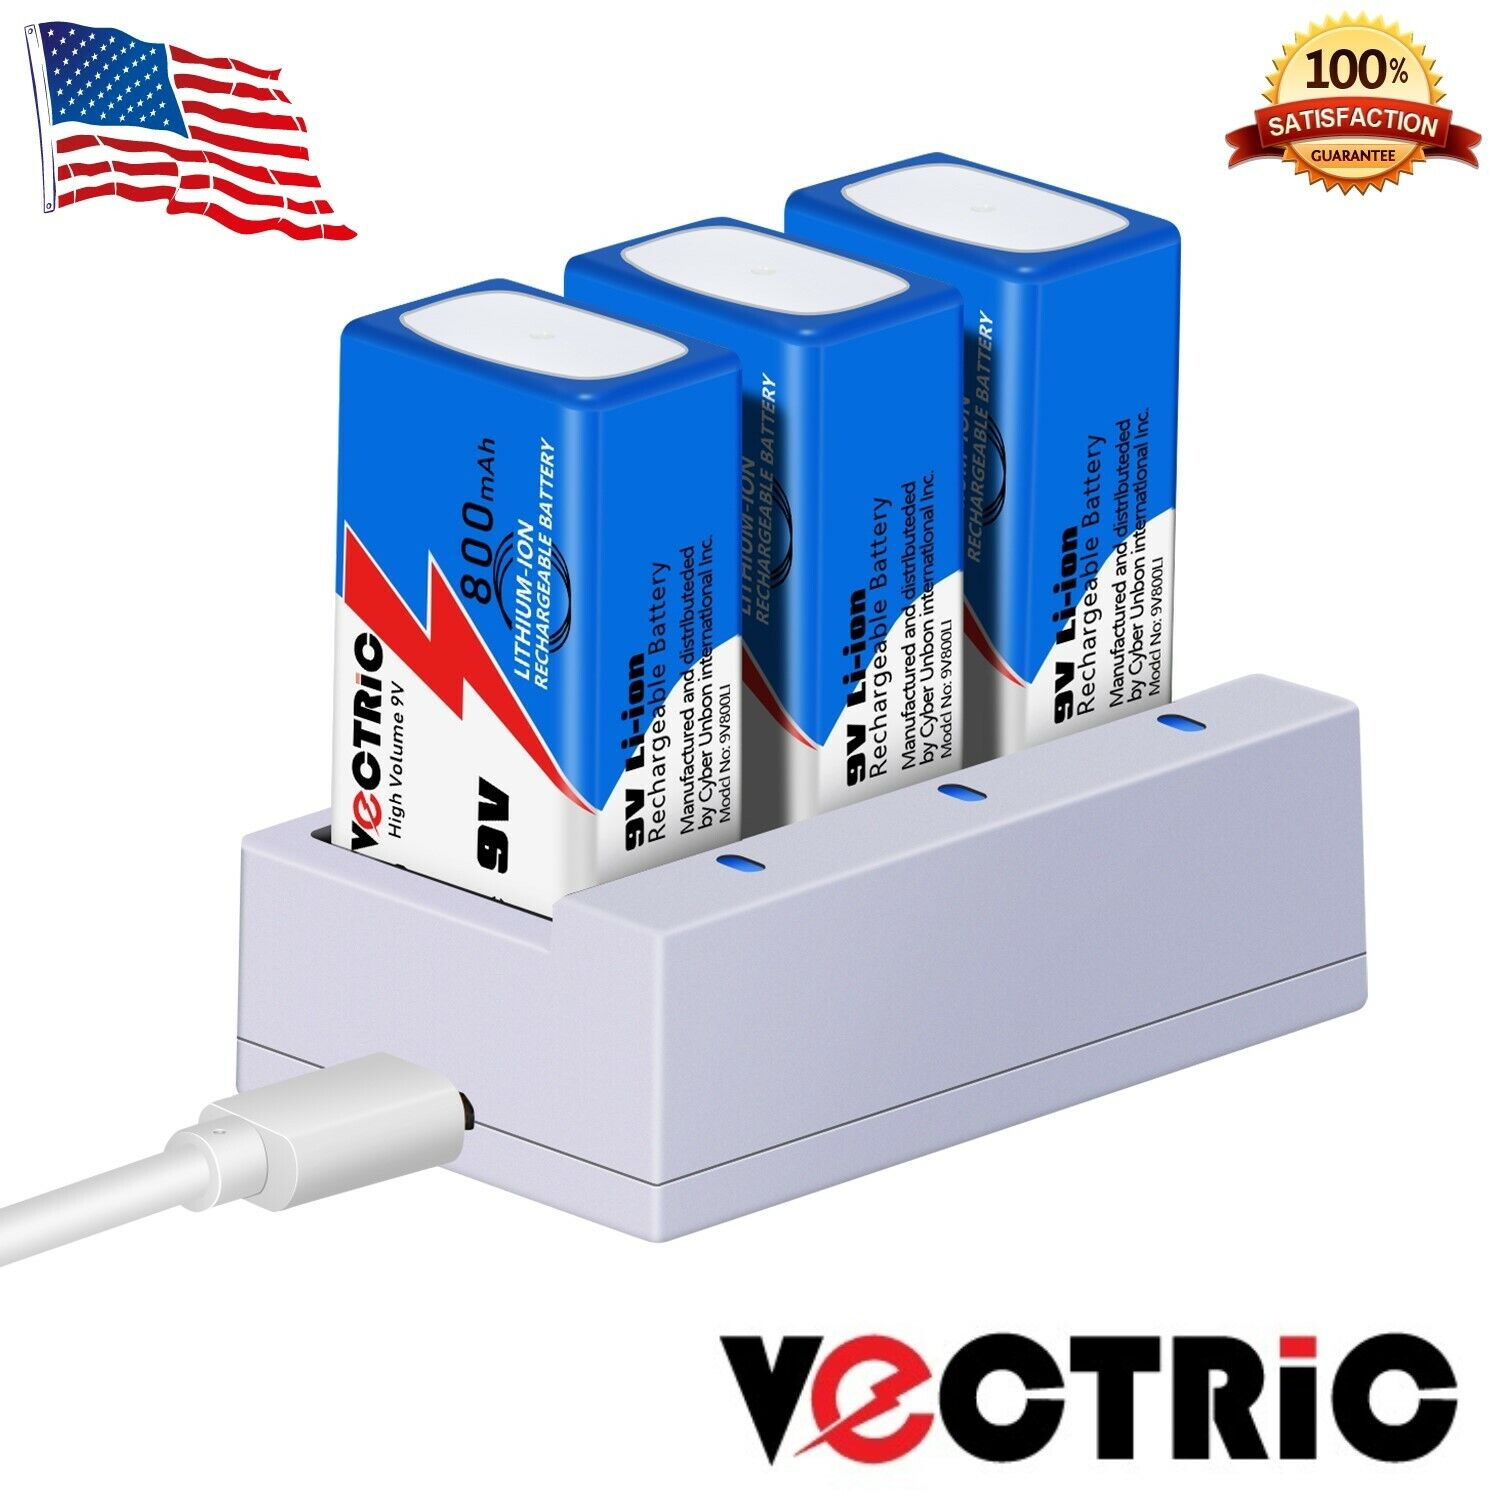 9V Rechargeable Li-ion Battery 800mAh VECTRIC 3 Pack with Smart Charger